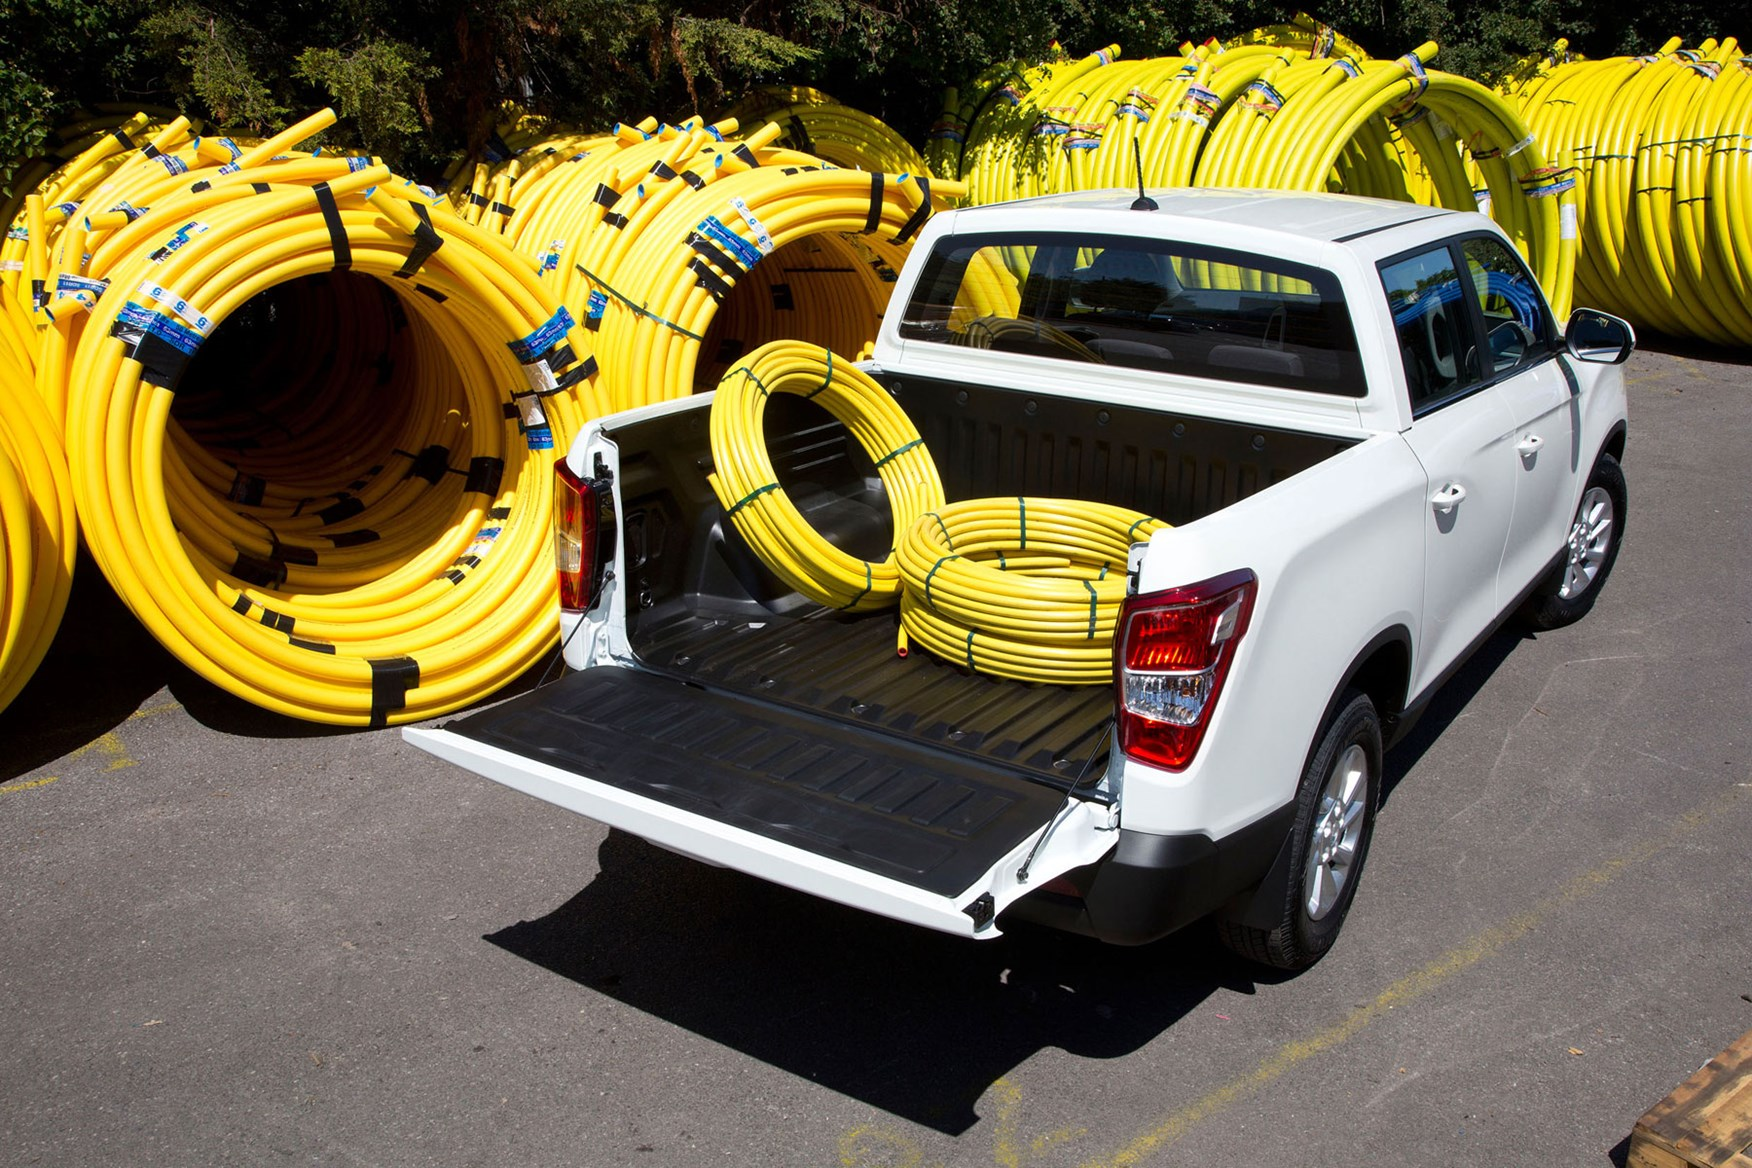 SsangYong Musso pickup, loaded with pipes, white, rear view